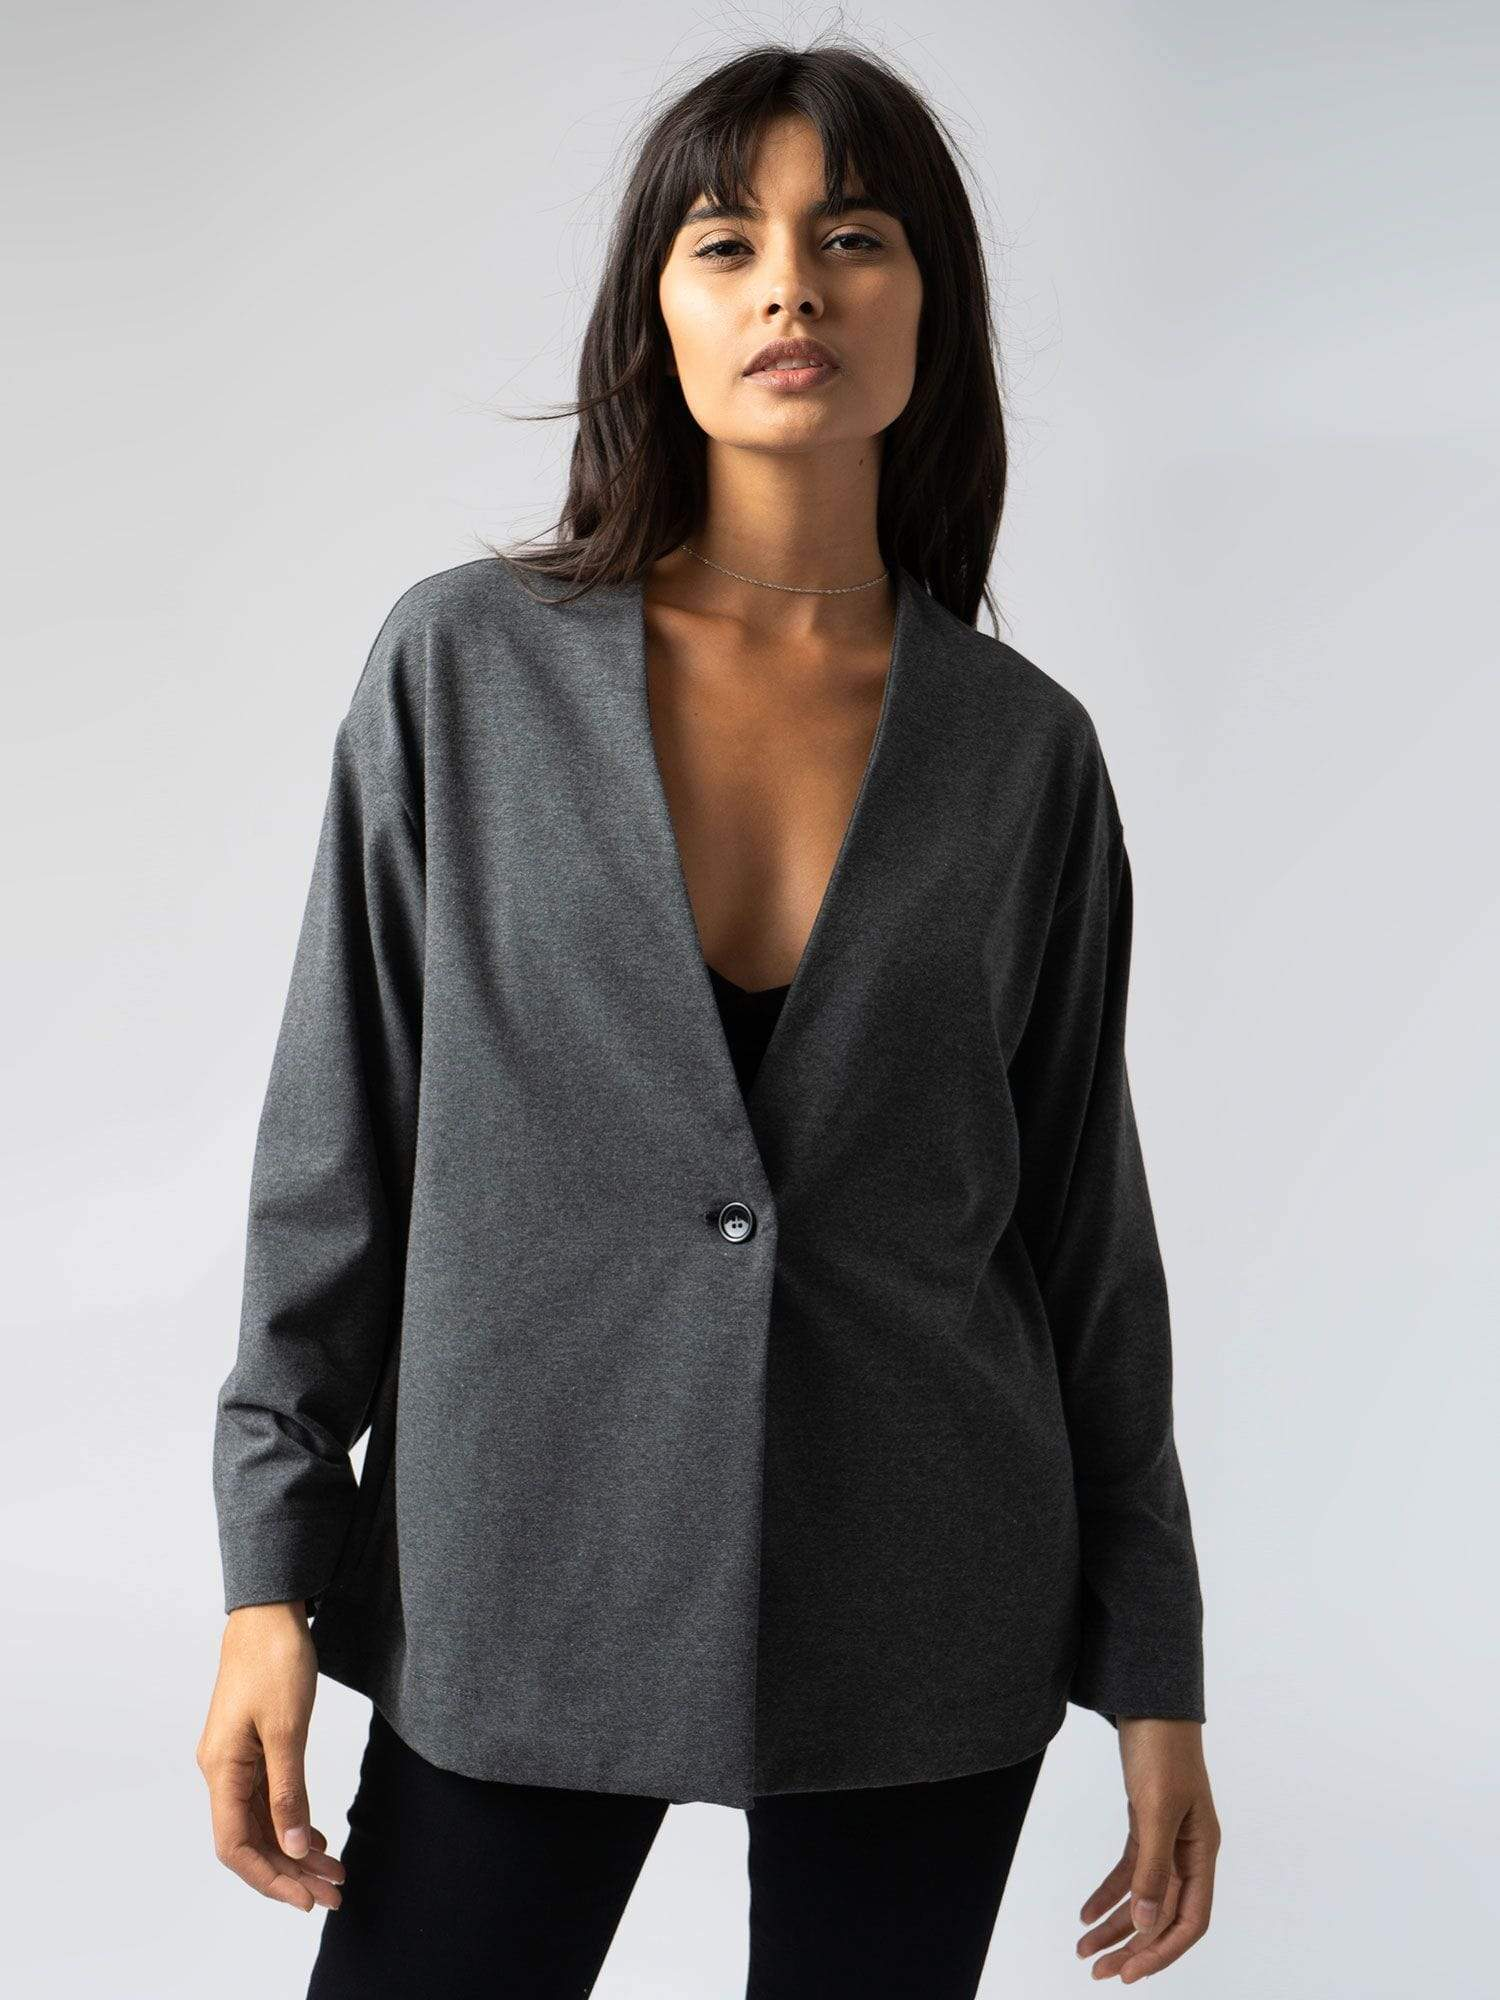 Apartment Jacket Charcoal